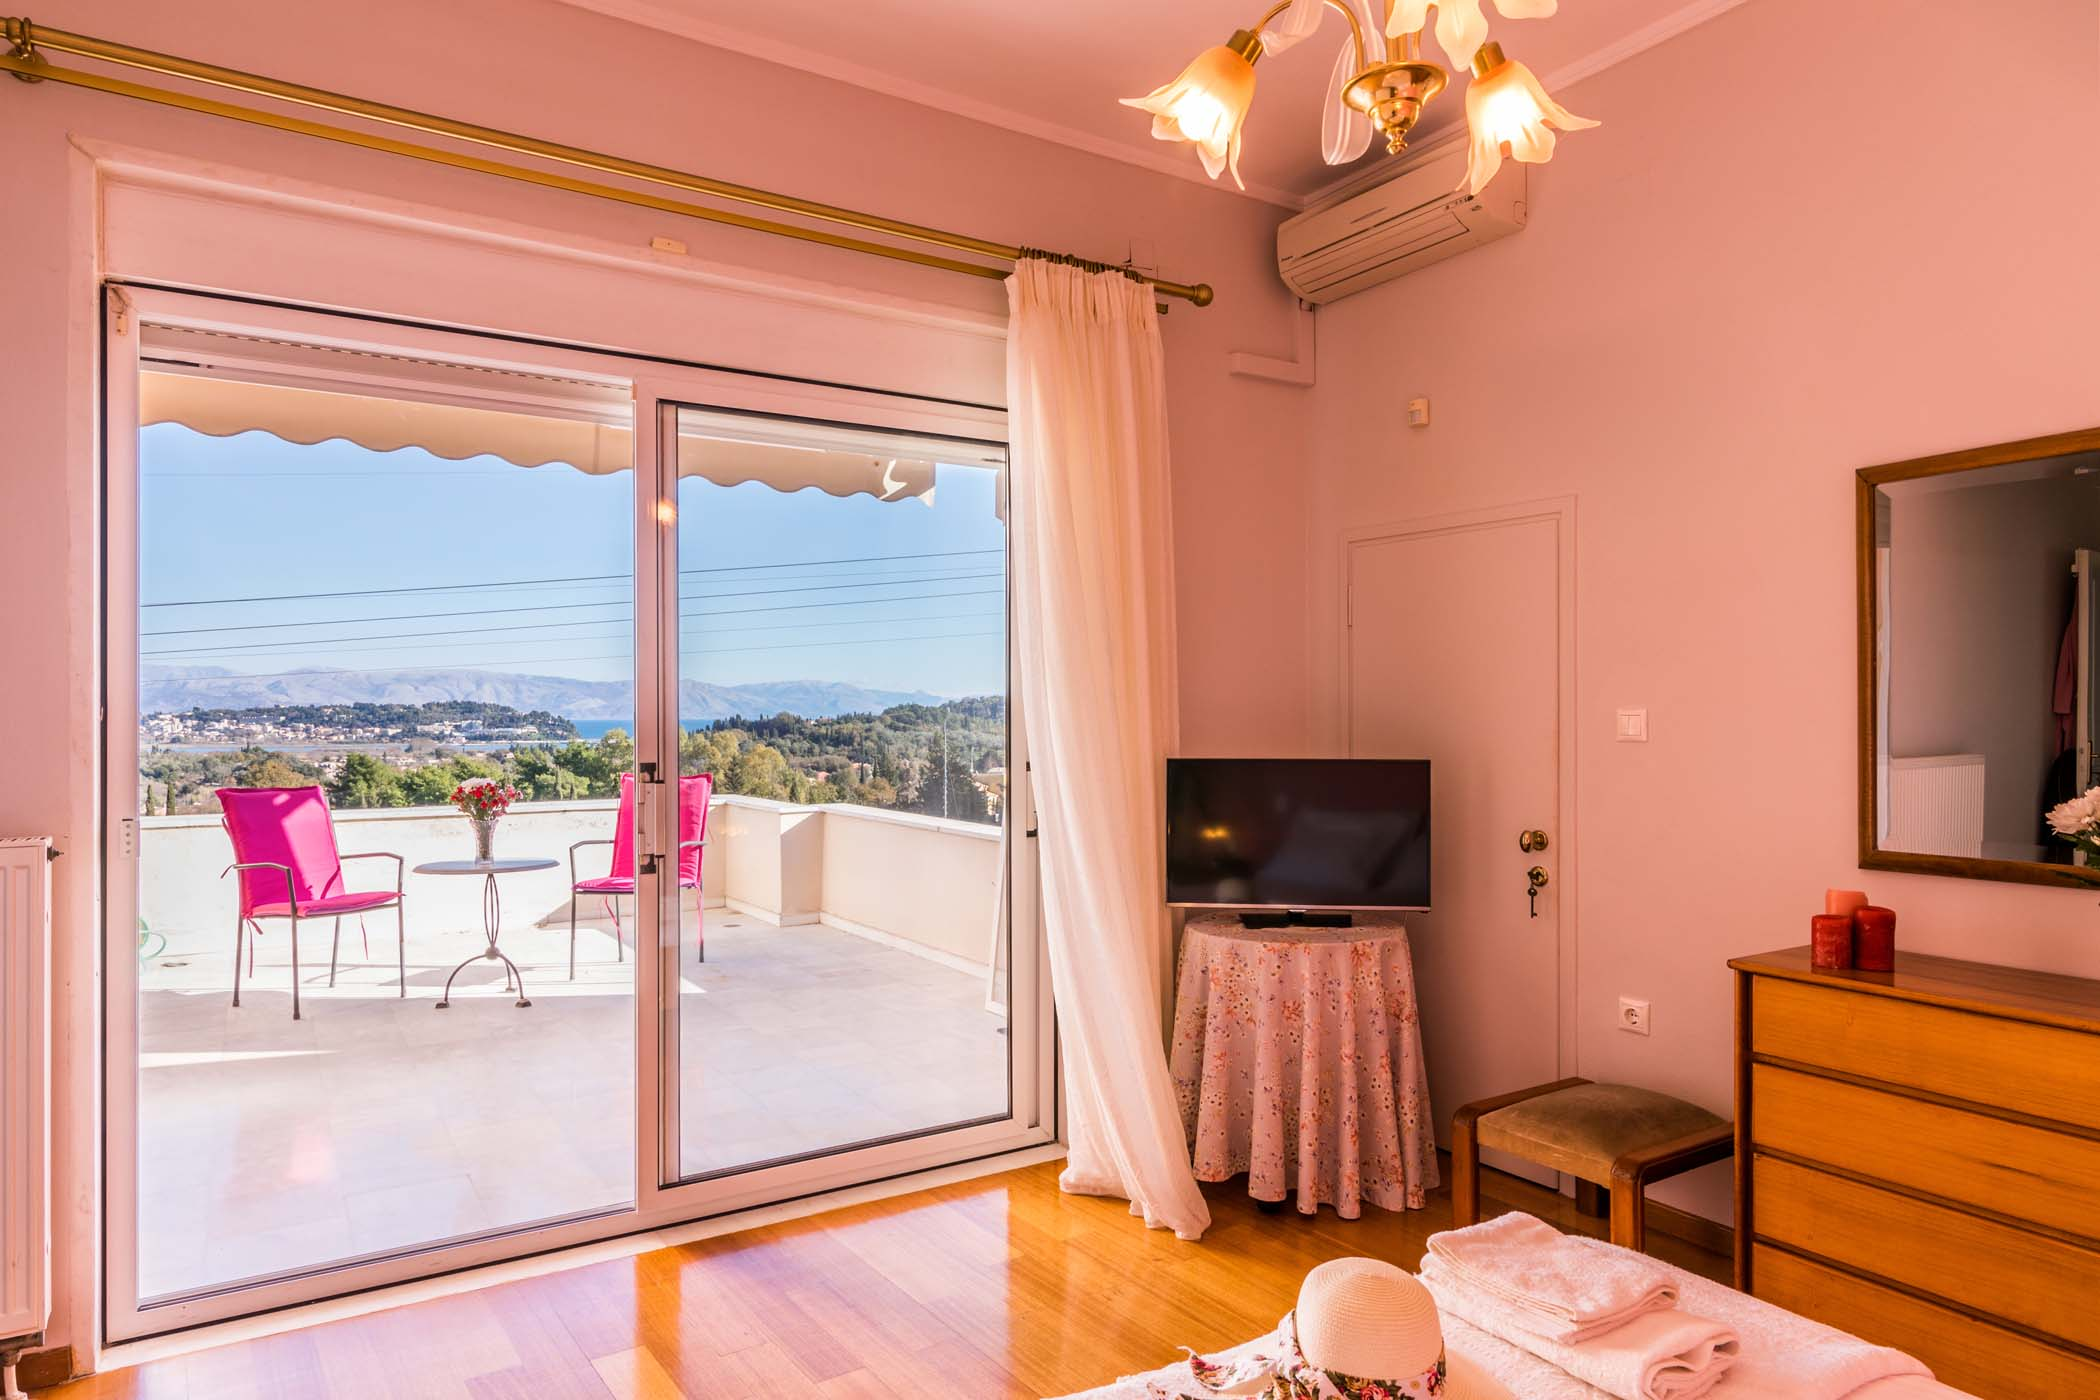 corfu cottages - corfu family apartments - ionian summer